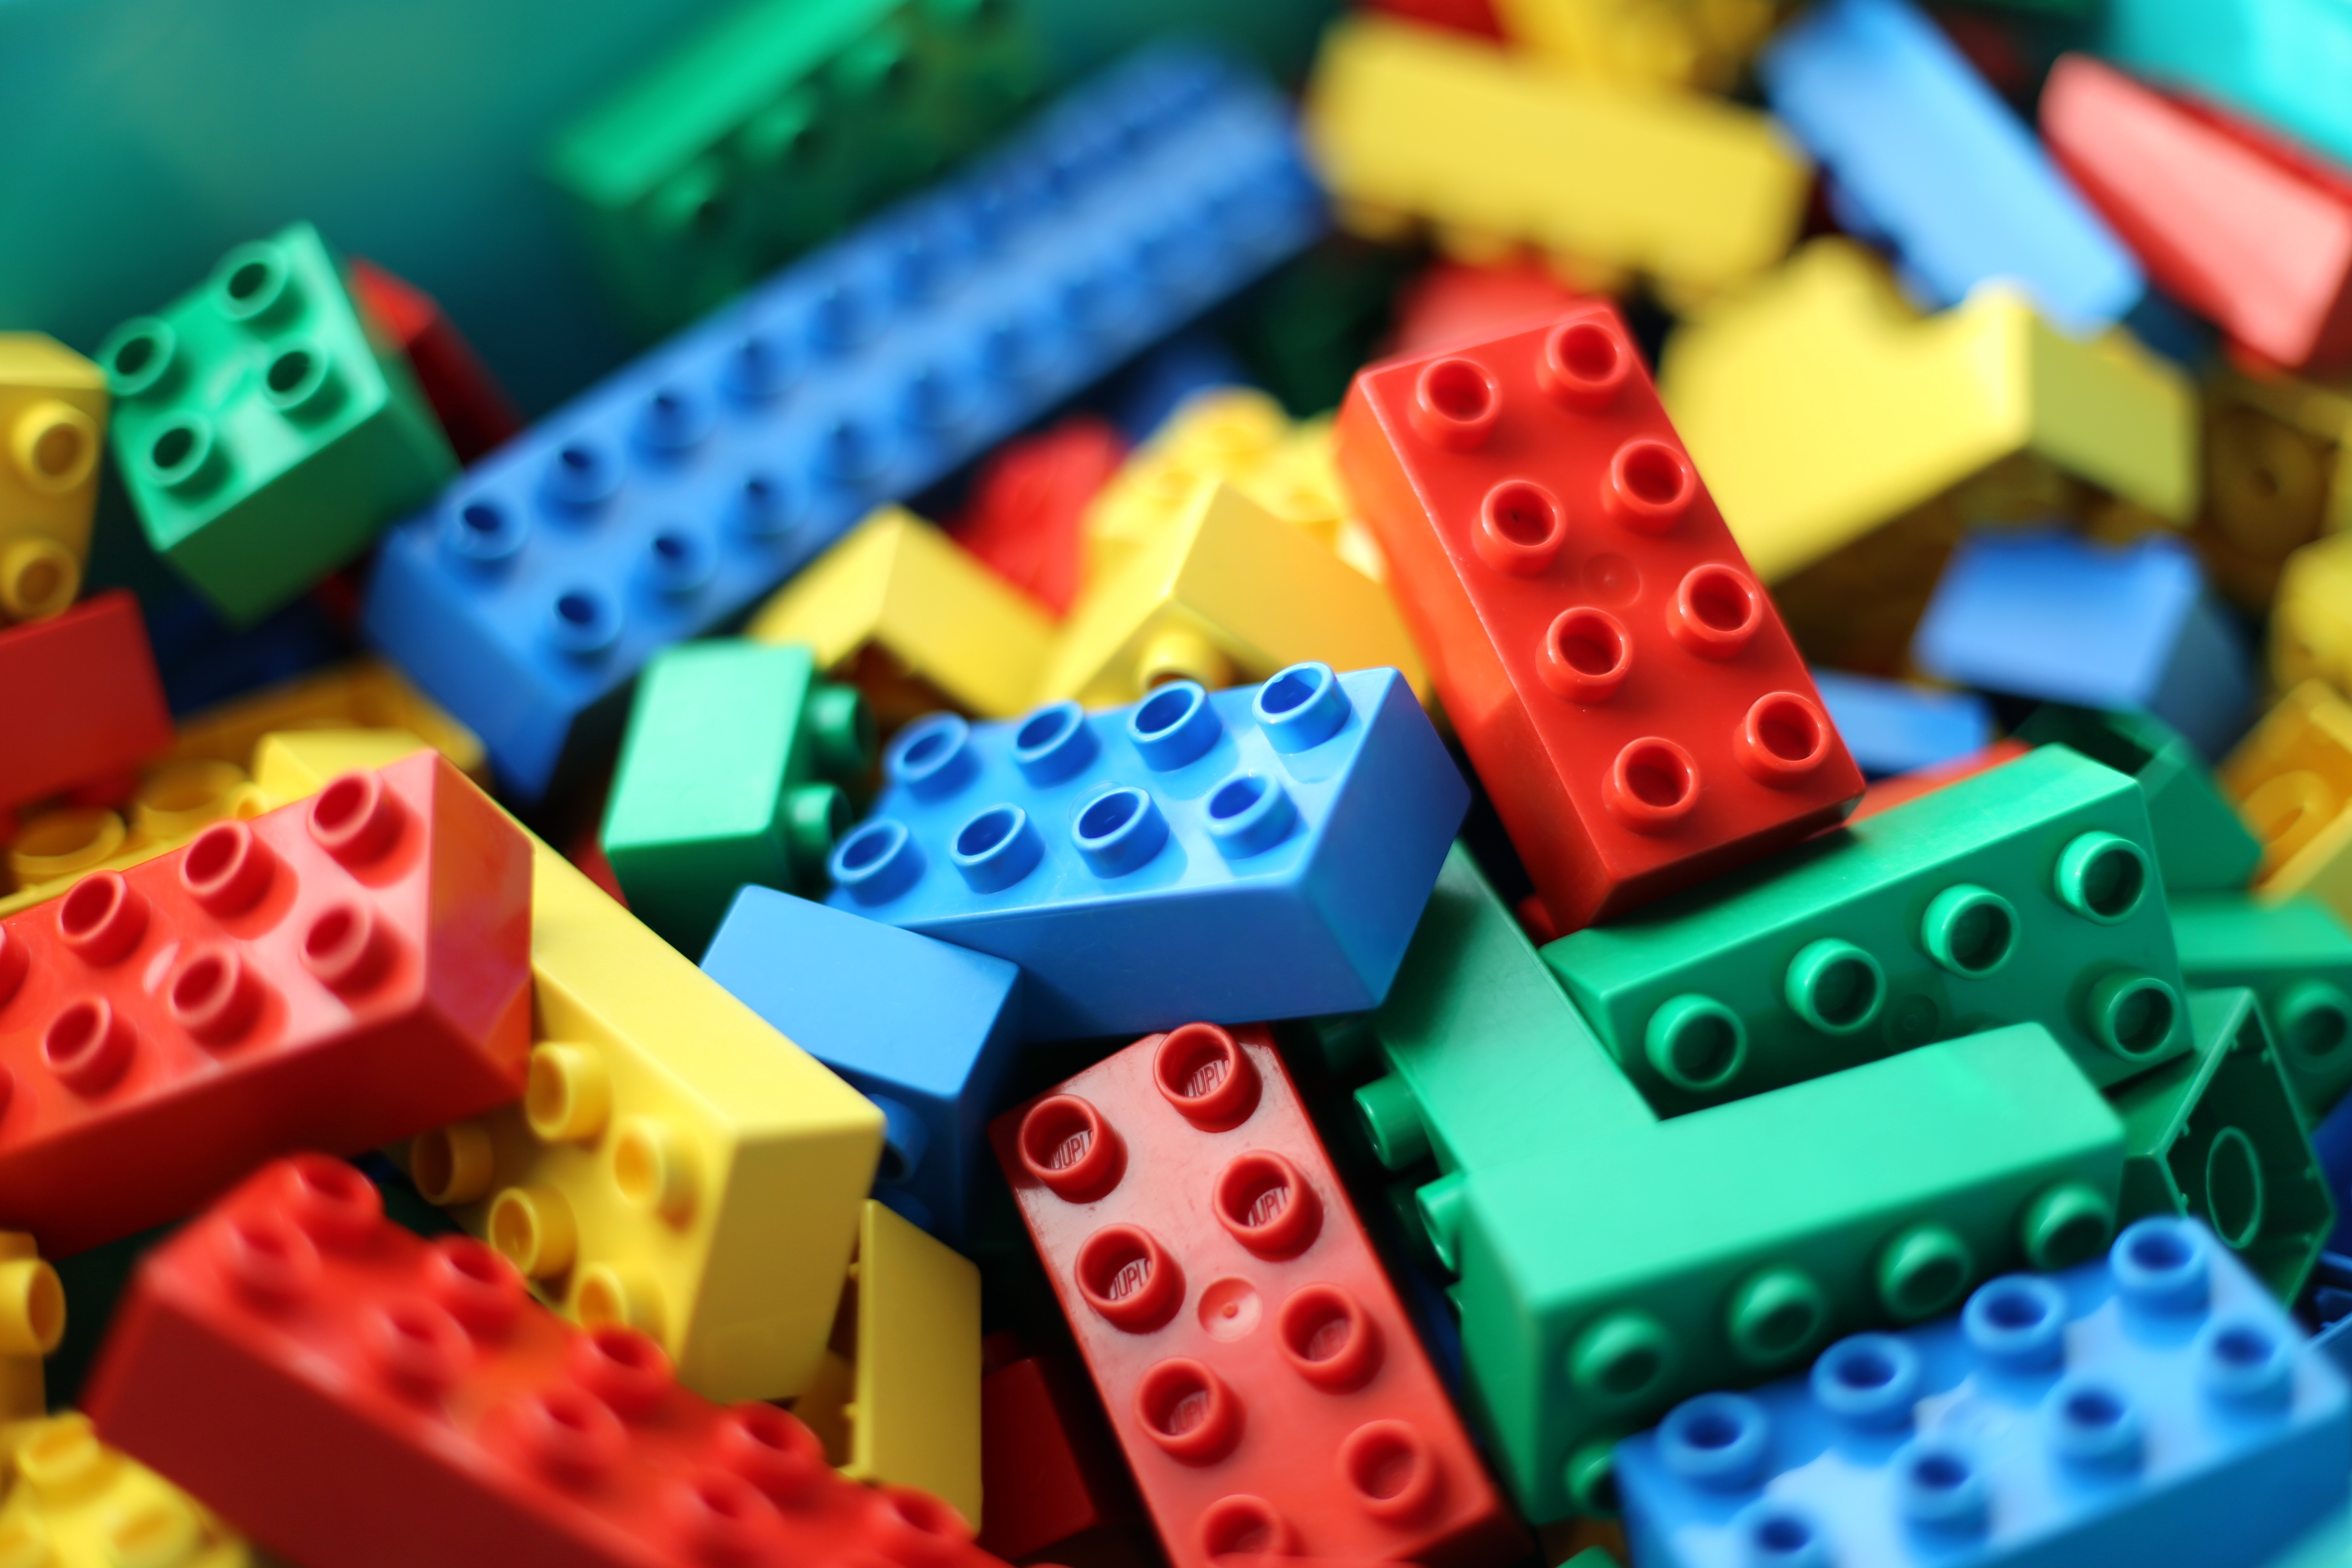 3648x2432 > Lego Wallpapers